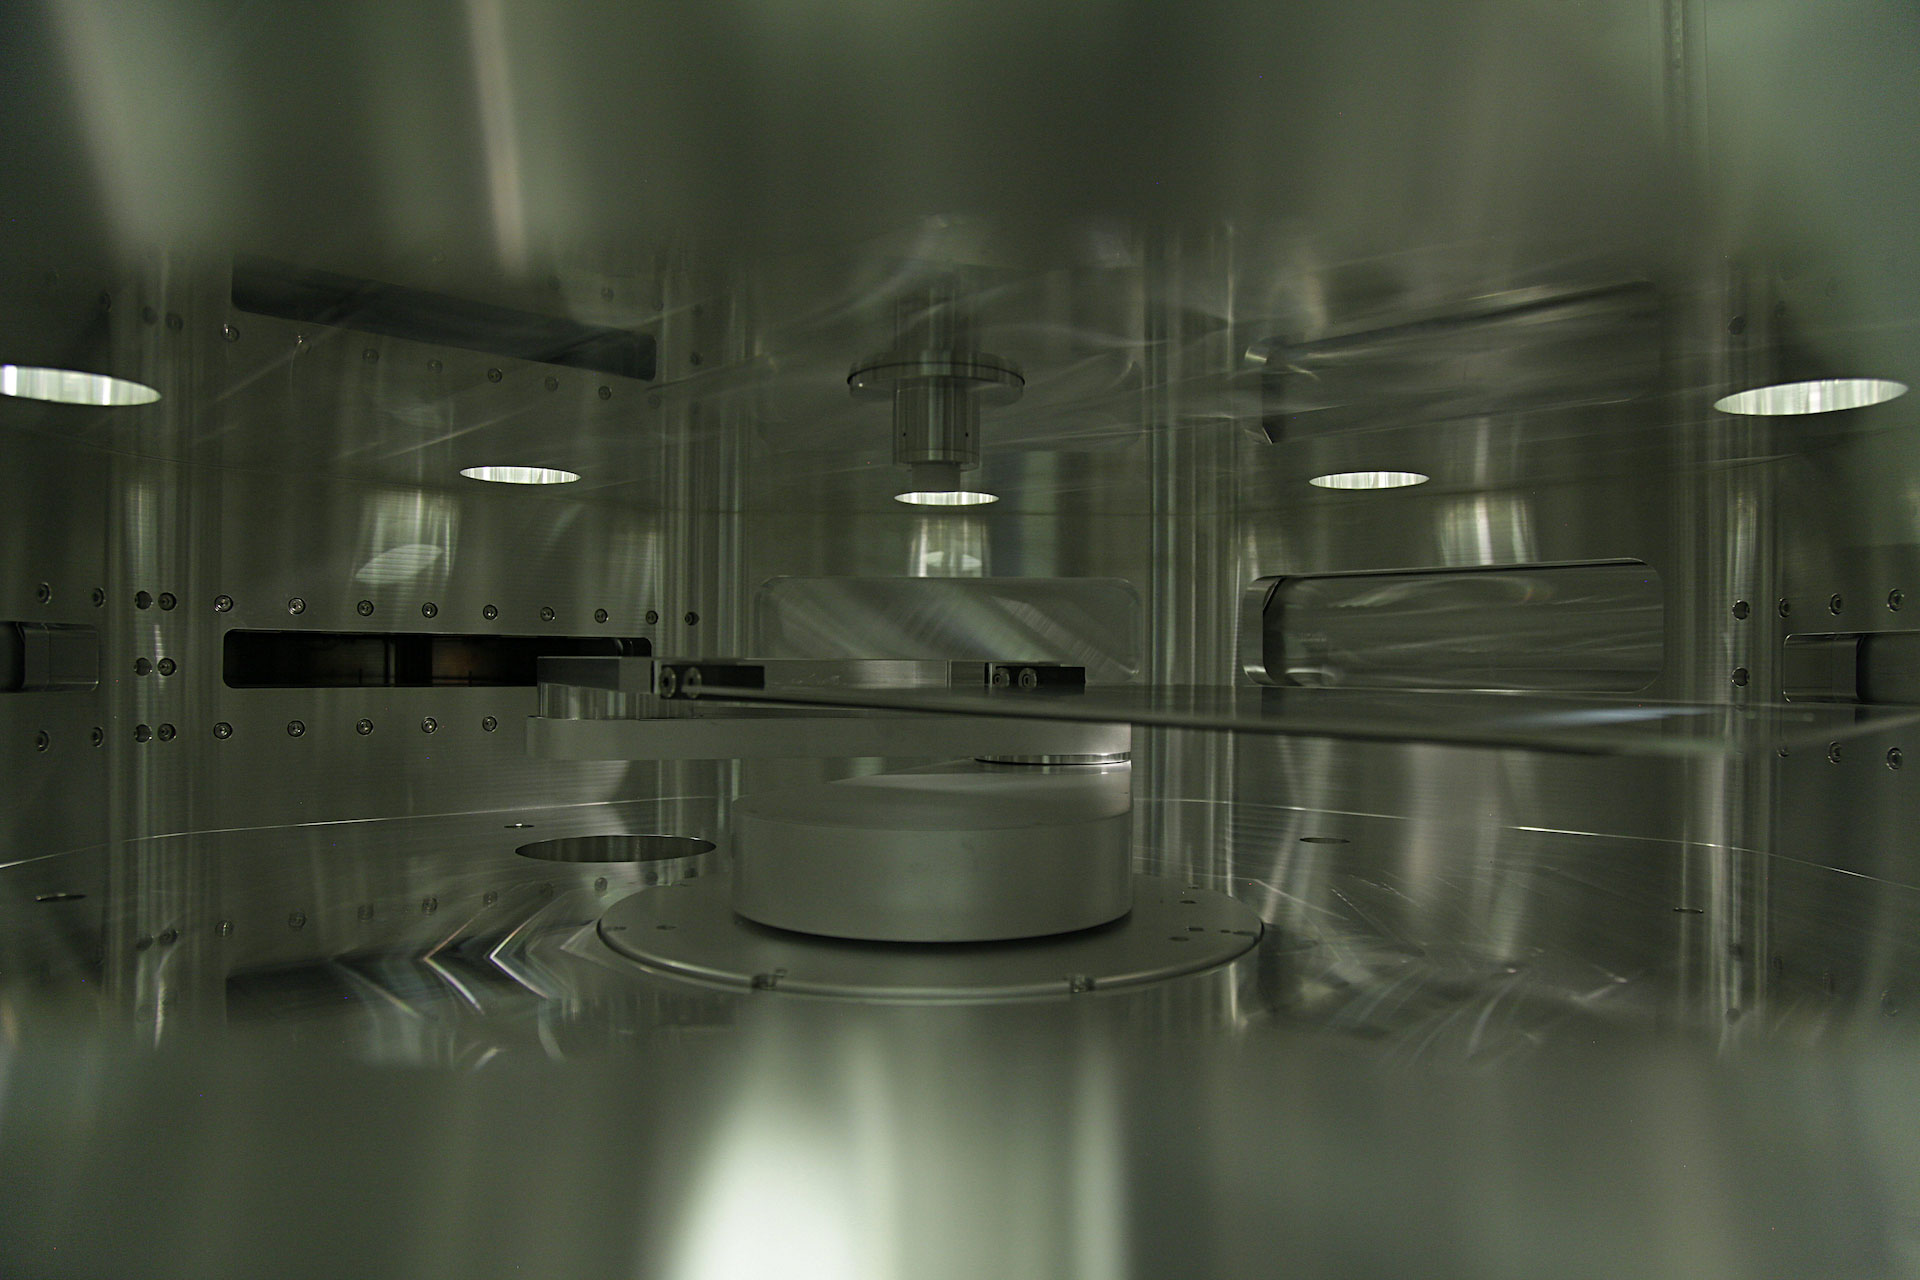 INDEOtec's 'OCTOPUS' series of R&D and production PECVD deposition tools use a proprietary 'Mirror Reactor' concept, which avoids the flipping between the top and bottom wafer deposition, eliminating the contamination issues and provide high throughput levels and the repeatability of high HJ cell conversion efficiencies. Image: INDEOtec